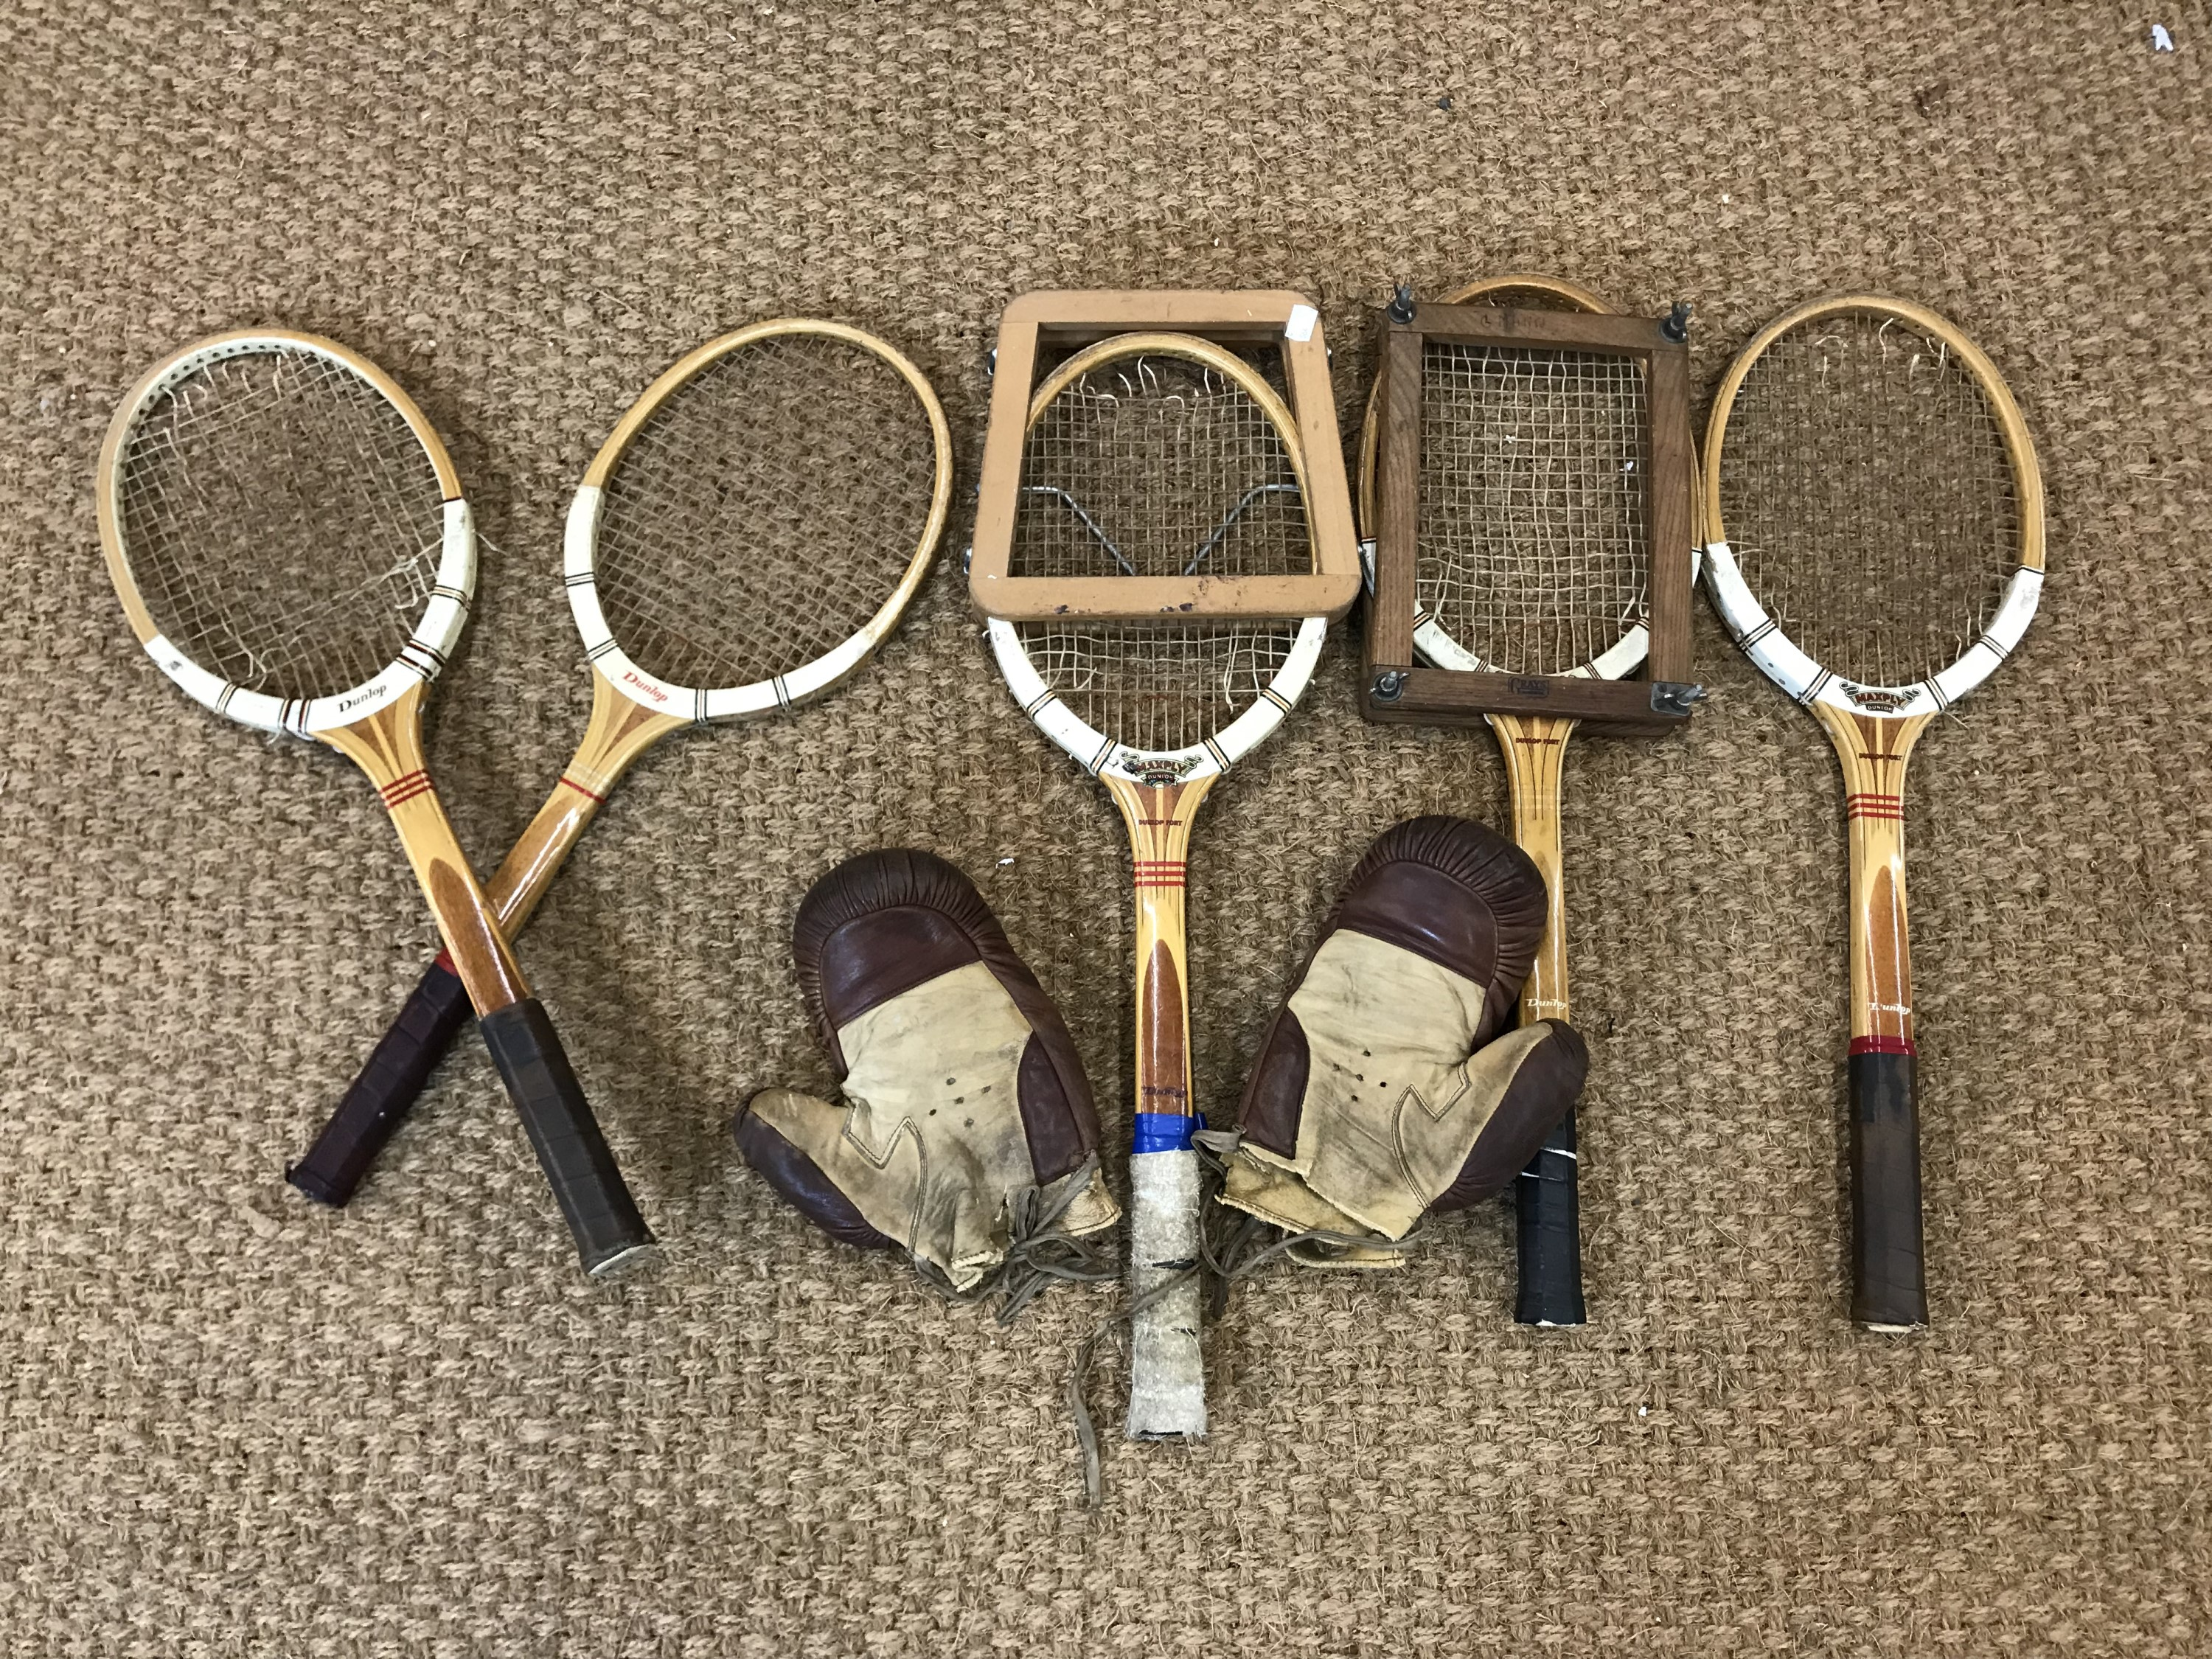 Lot 51 - Vintage Dunlop wooden tennis rackets together with a pair of leather boxing gloves